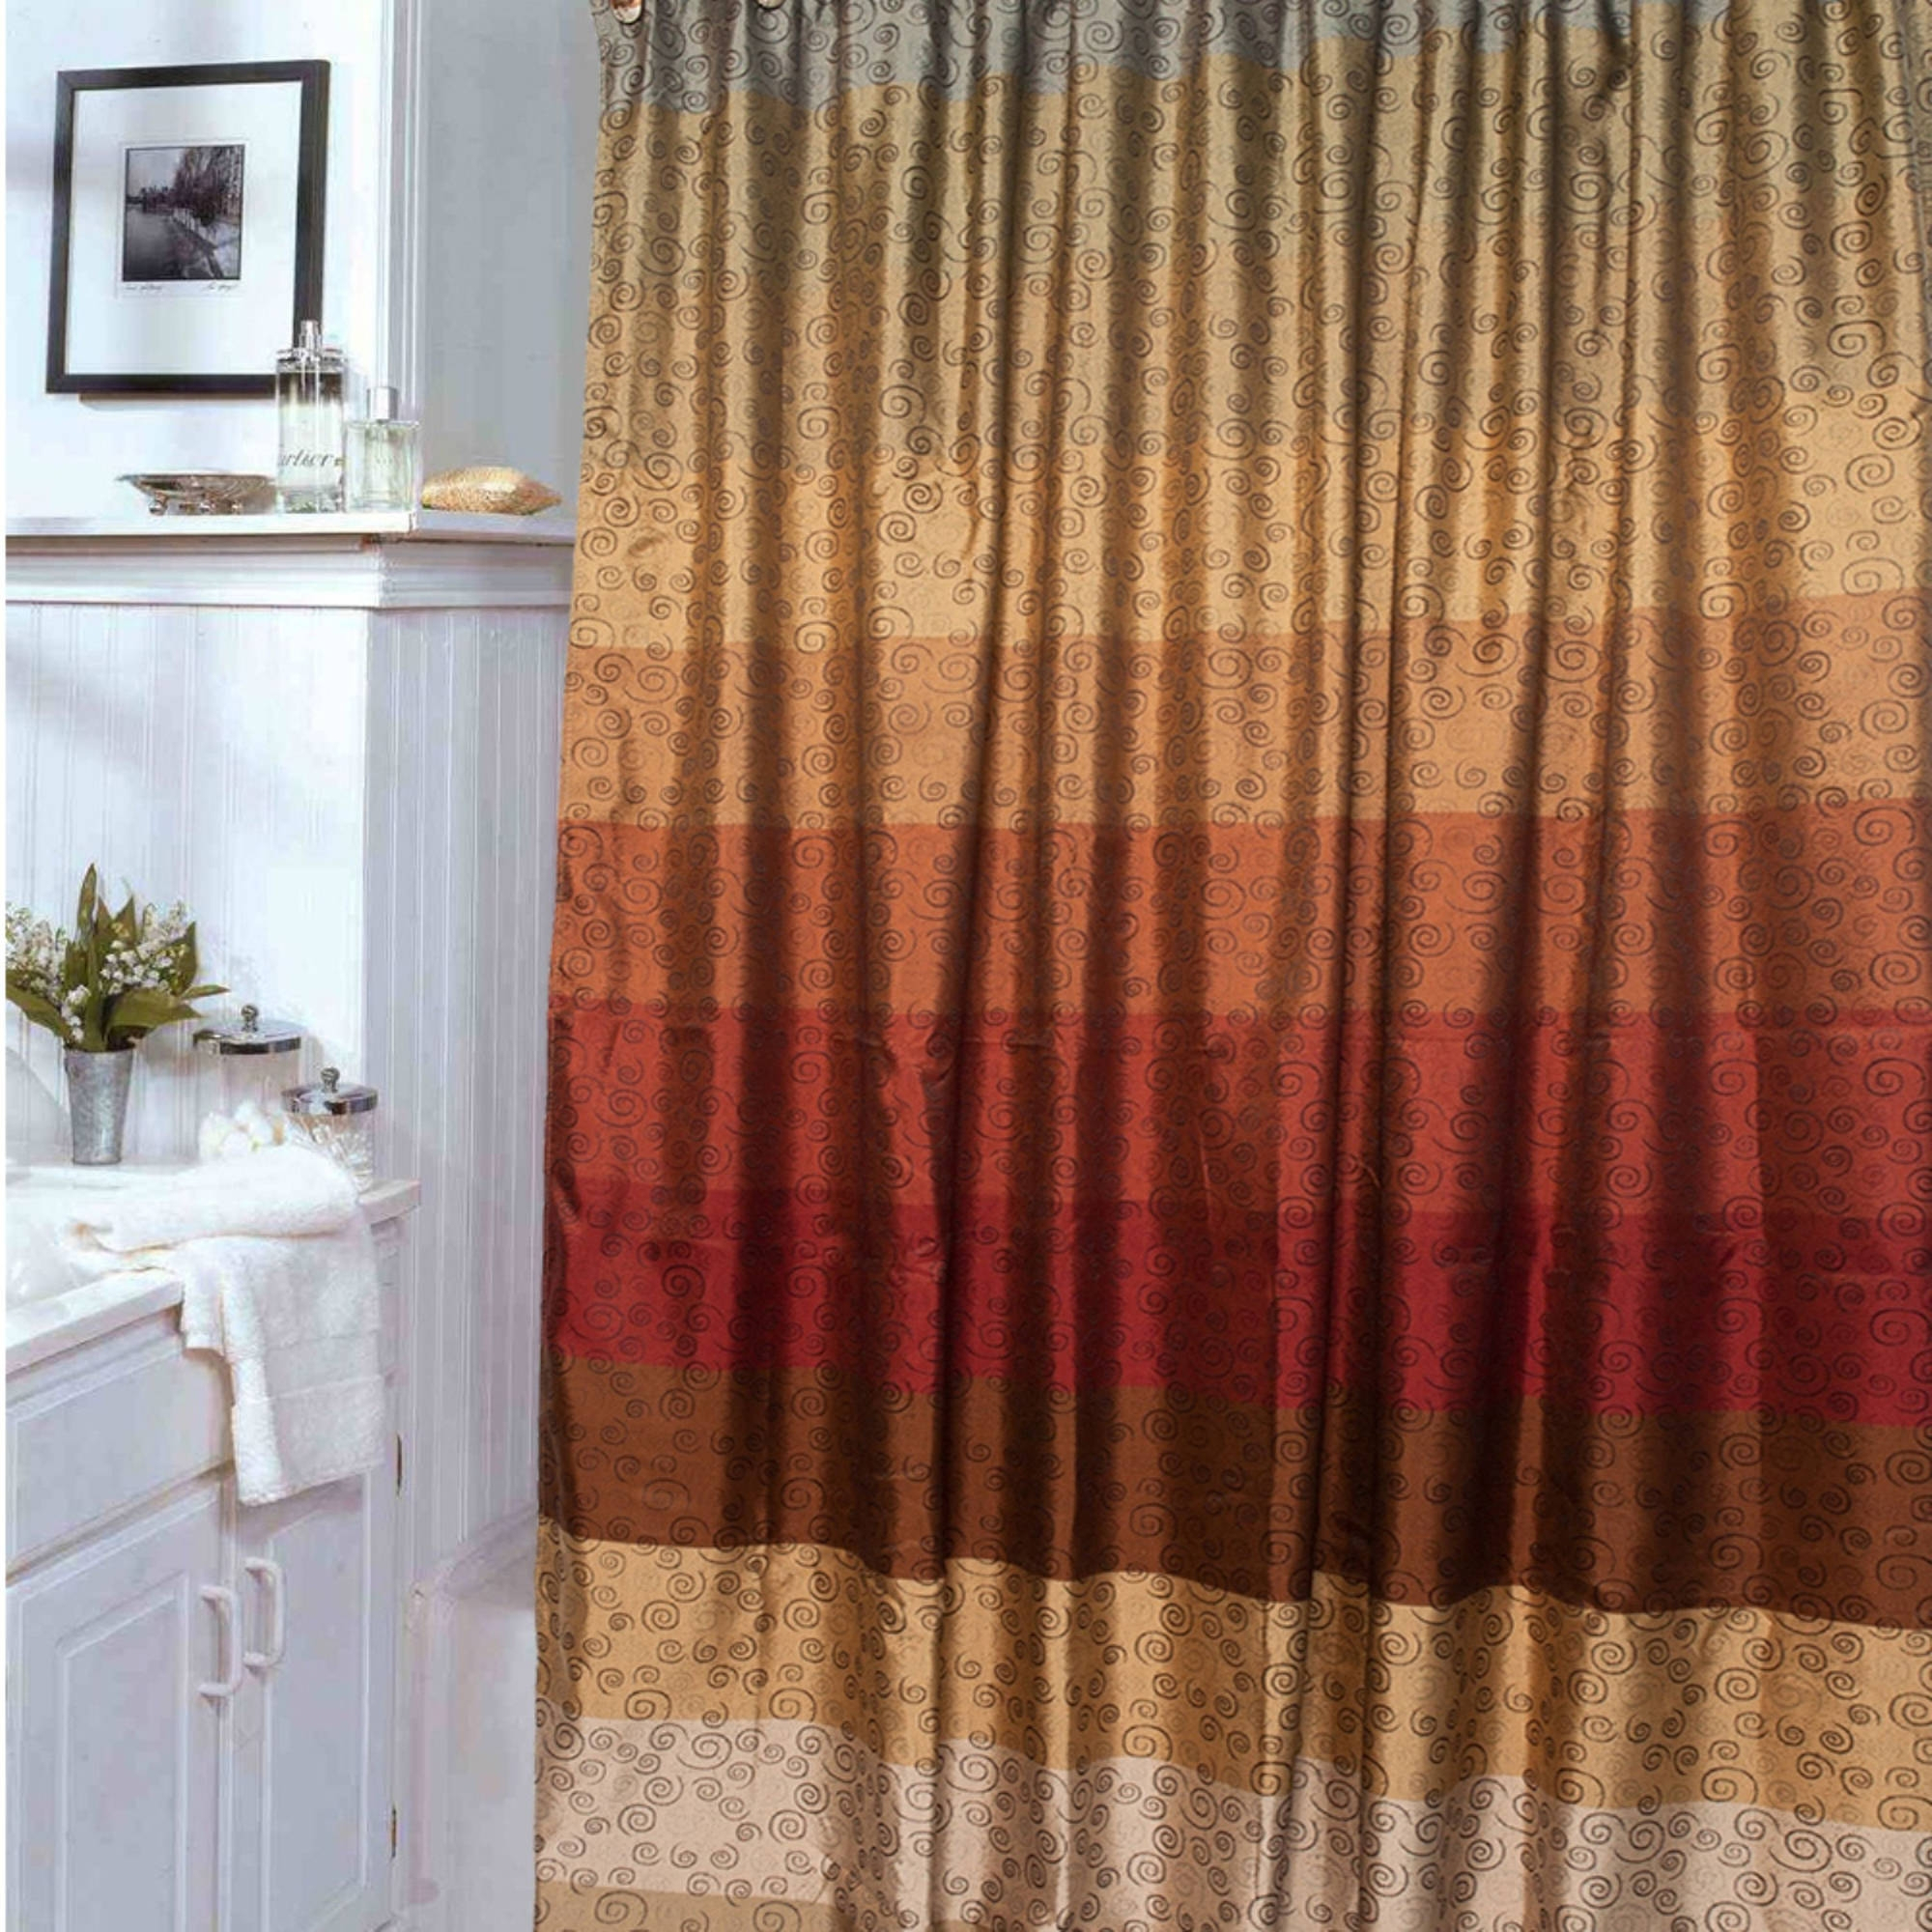 sheer with curtains then burnt color soulful drawn vs storefront pencil wall scurtain st facboksignin curtain wa particular unique in brown orange